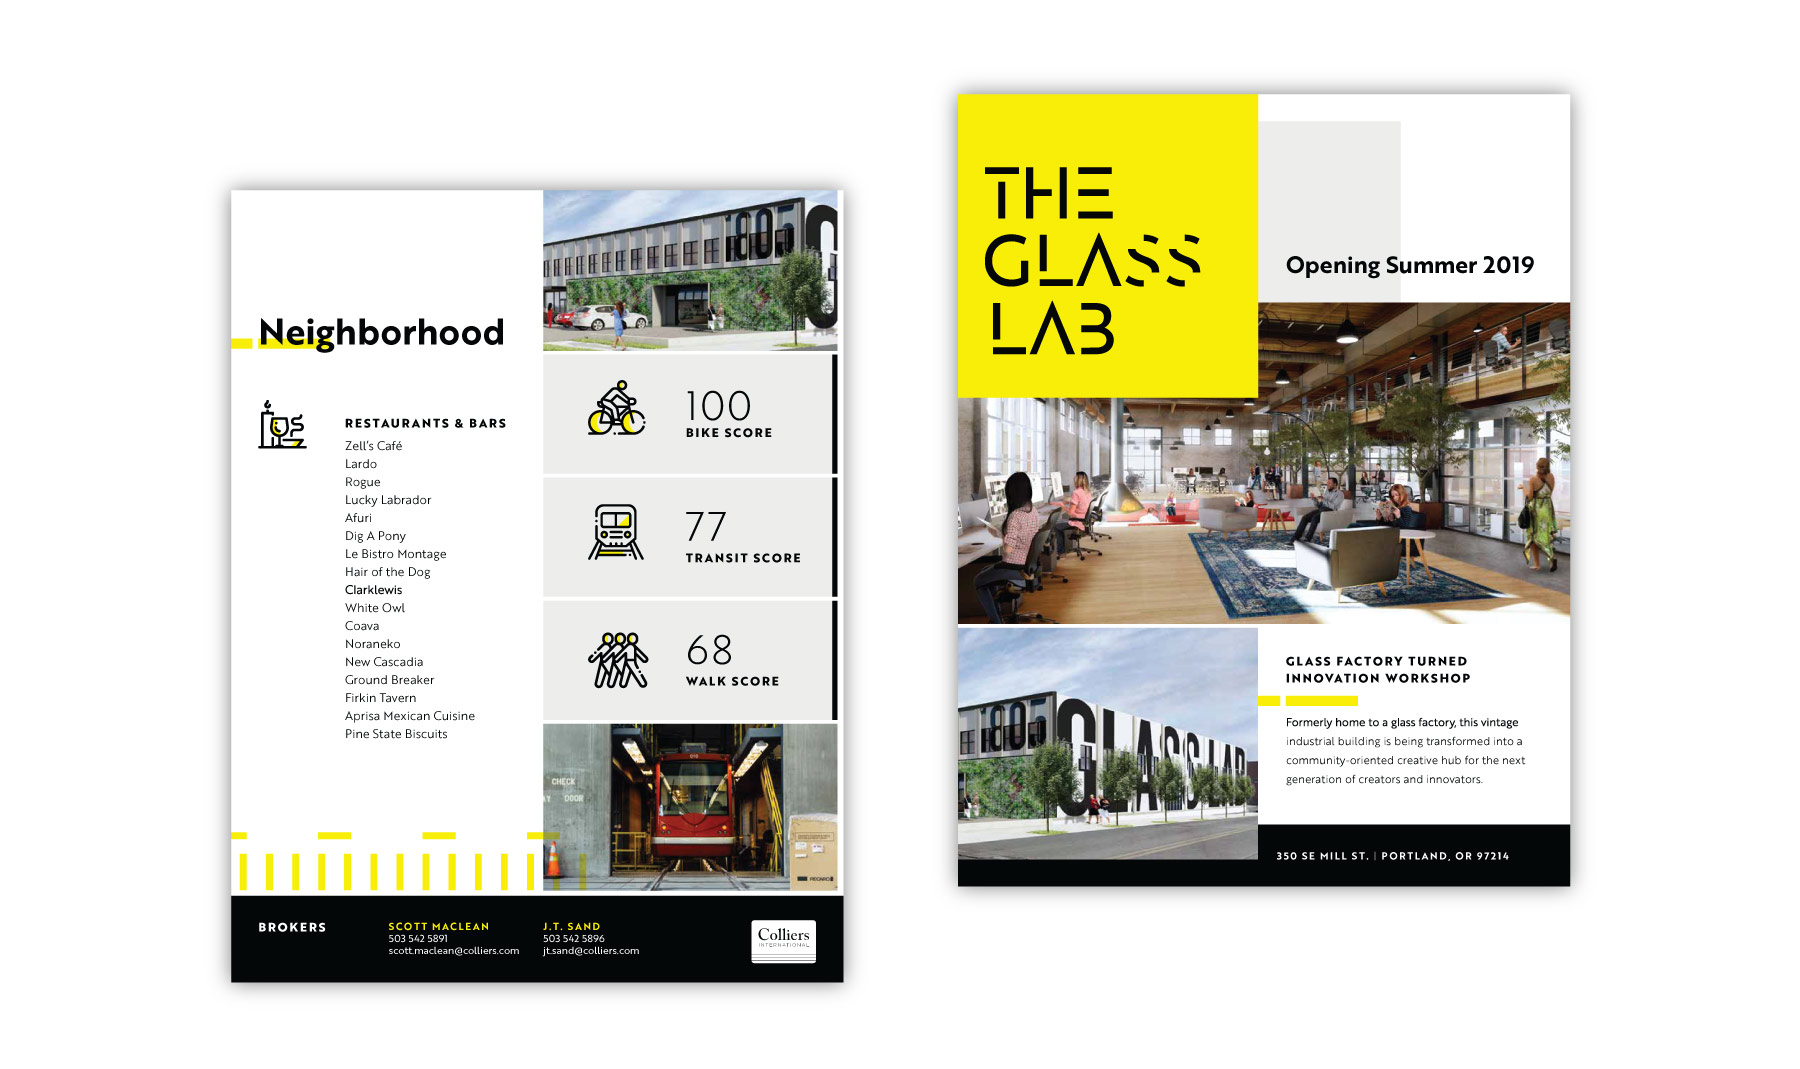 Glass-Lab-Brochure-1.jpg